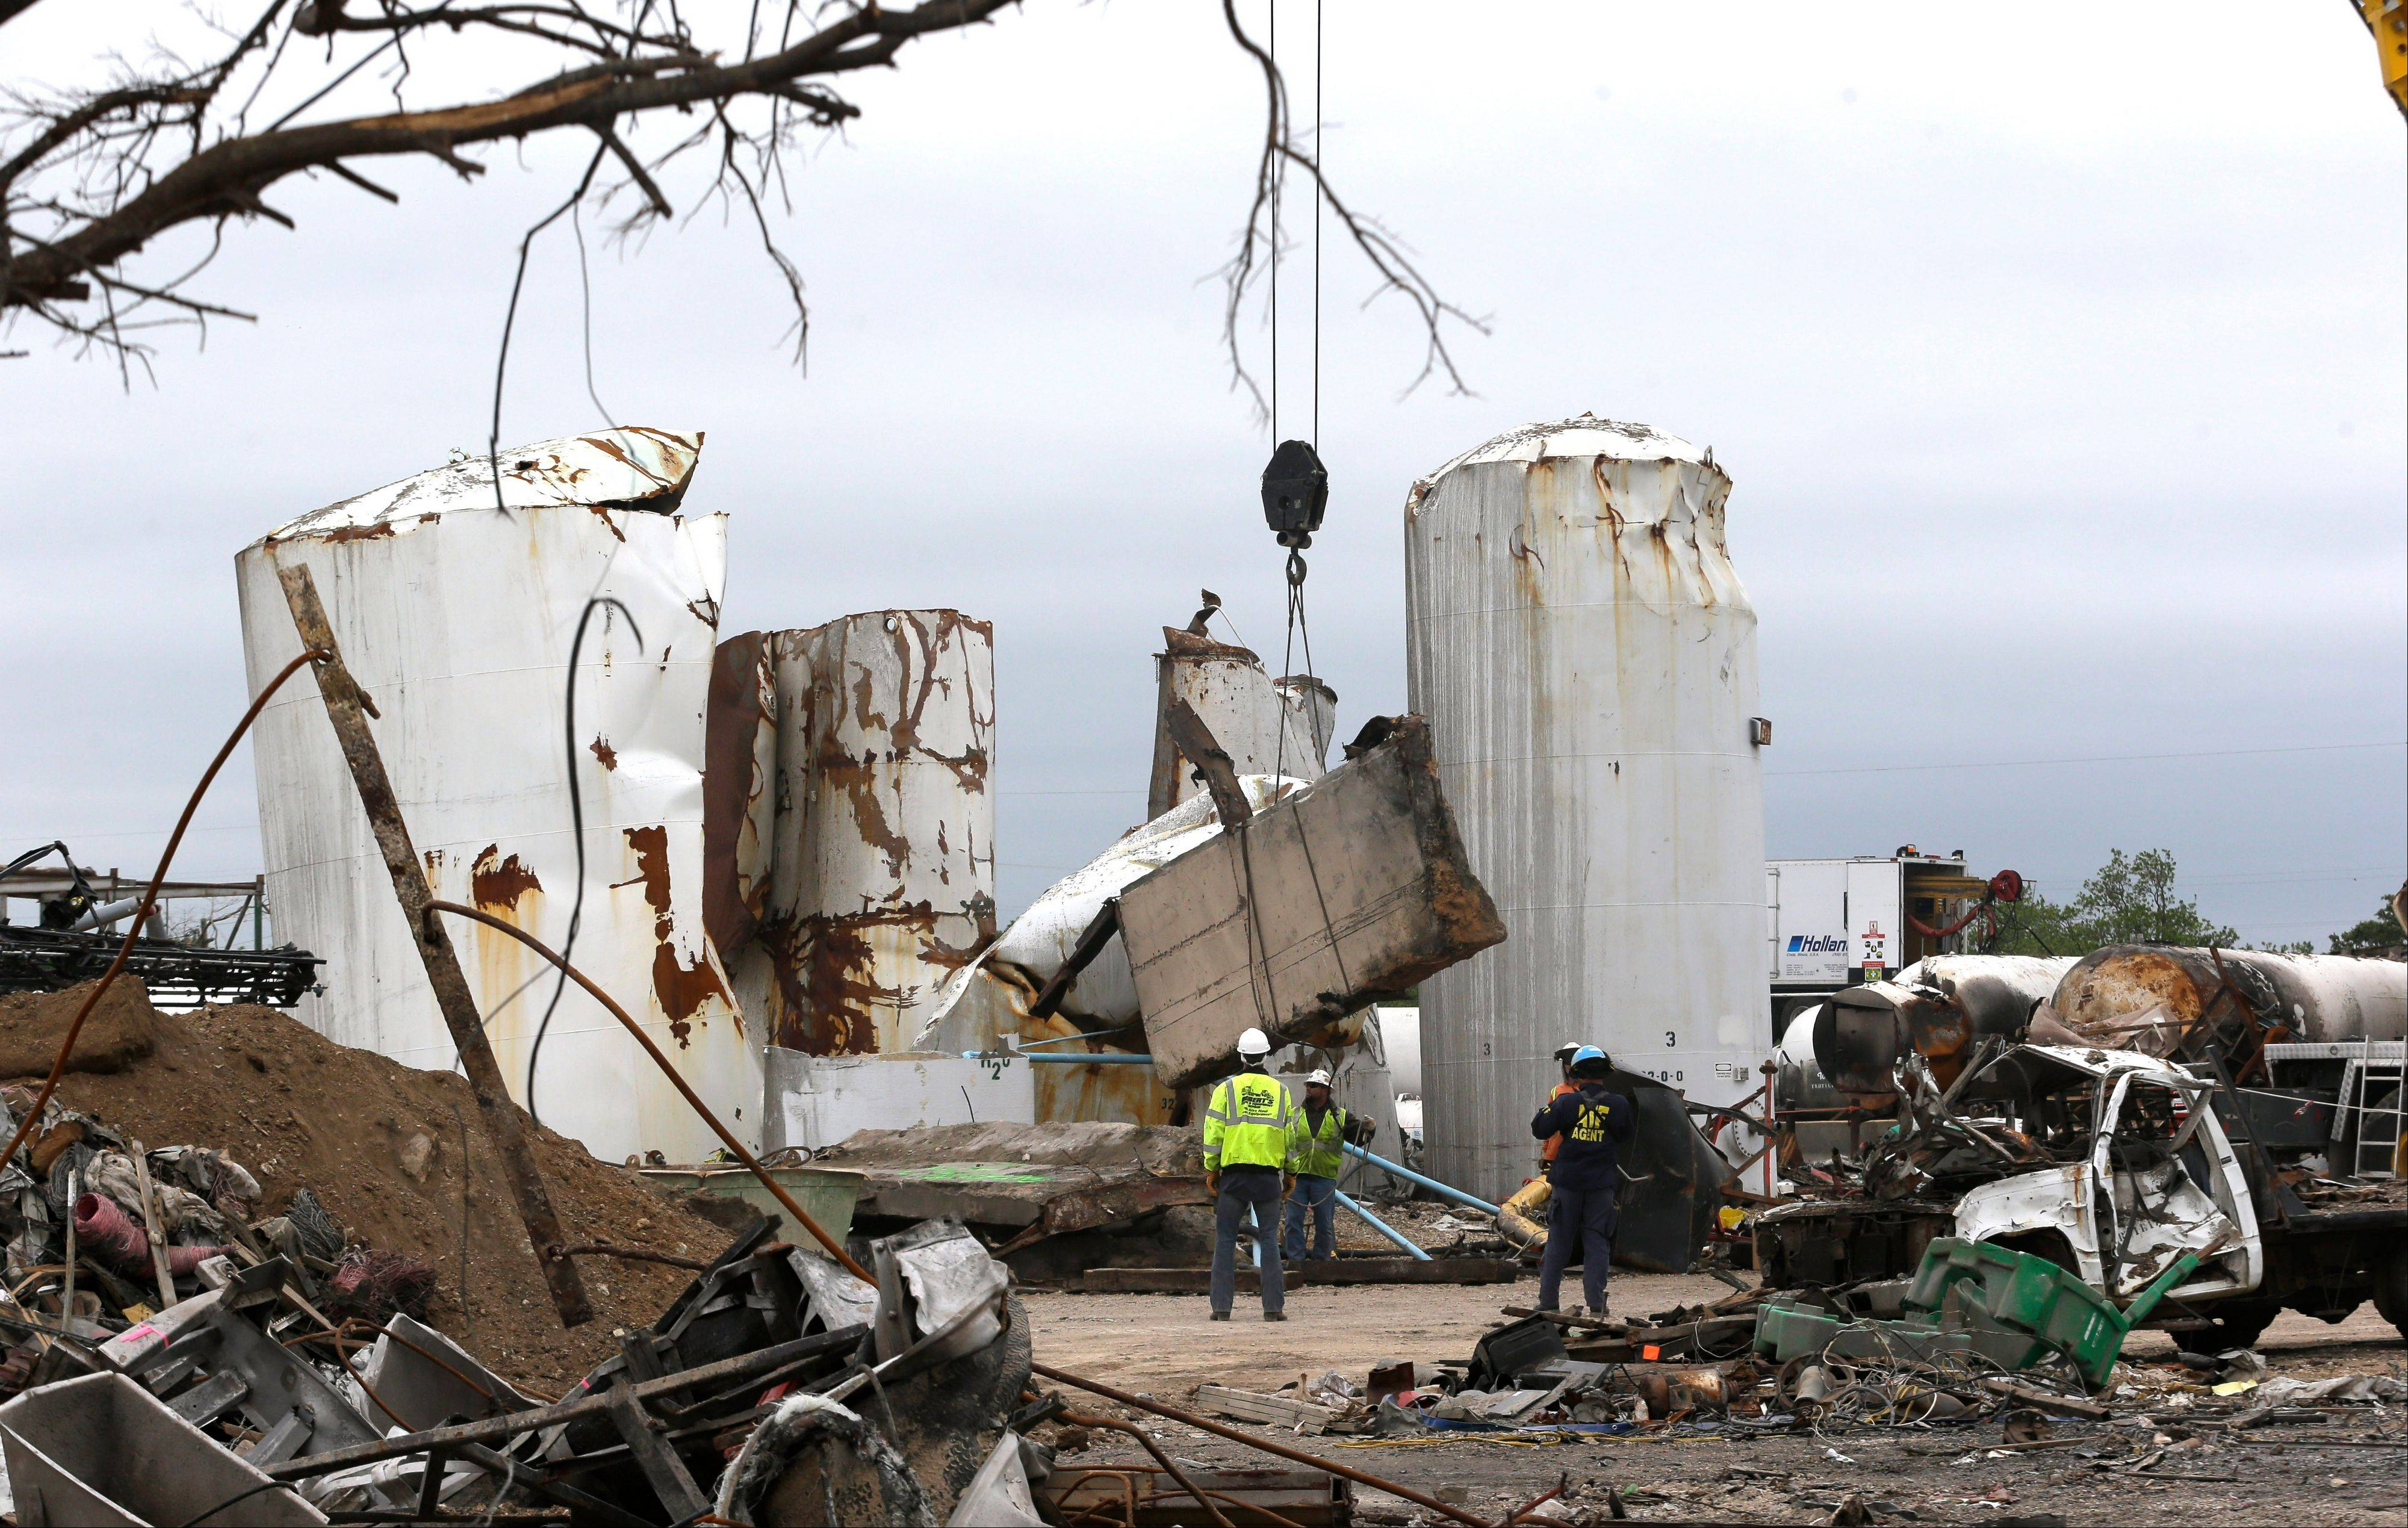 Associated Press/May 2 Investigators move and look through the debris of the destroyed fertilizer plant in West, Texas.